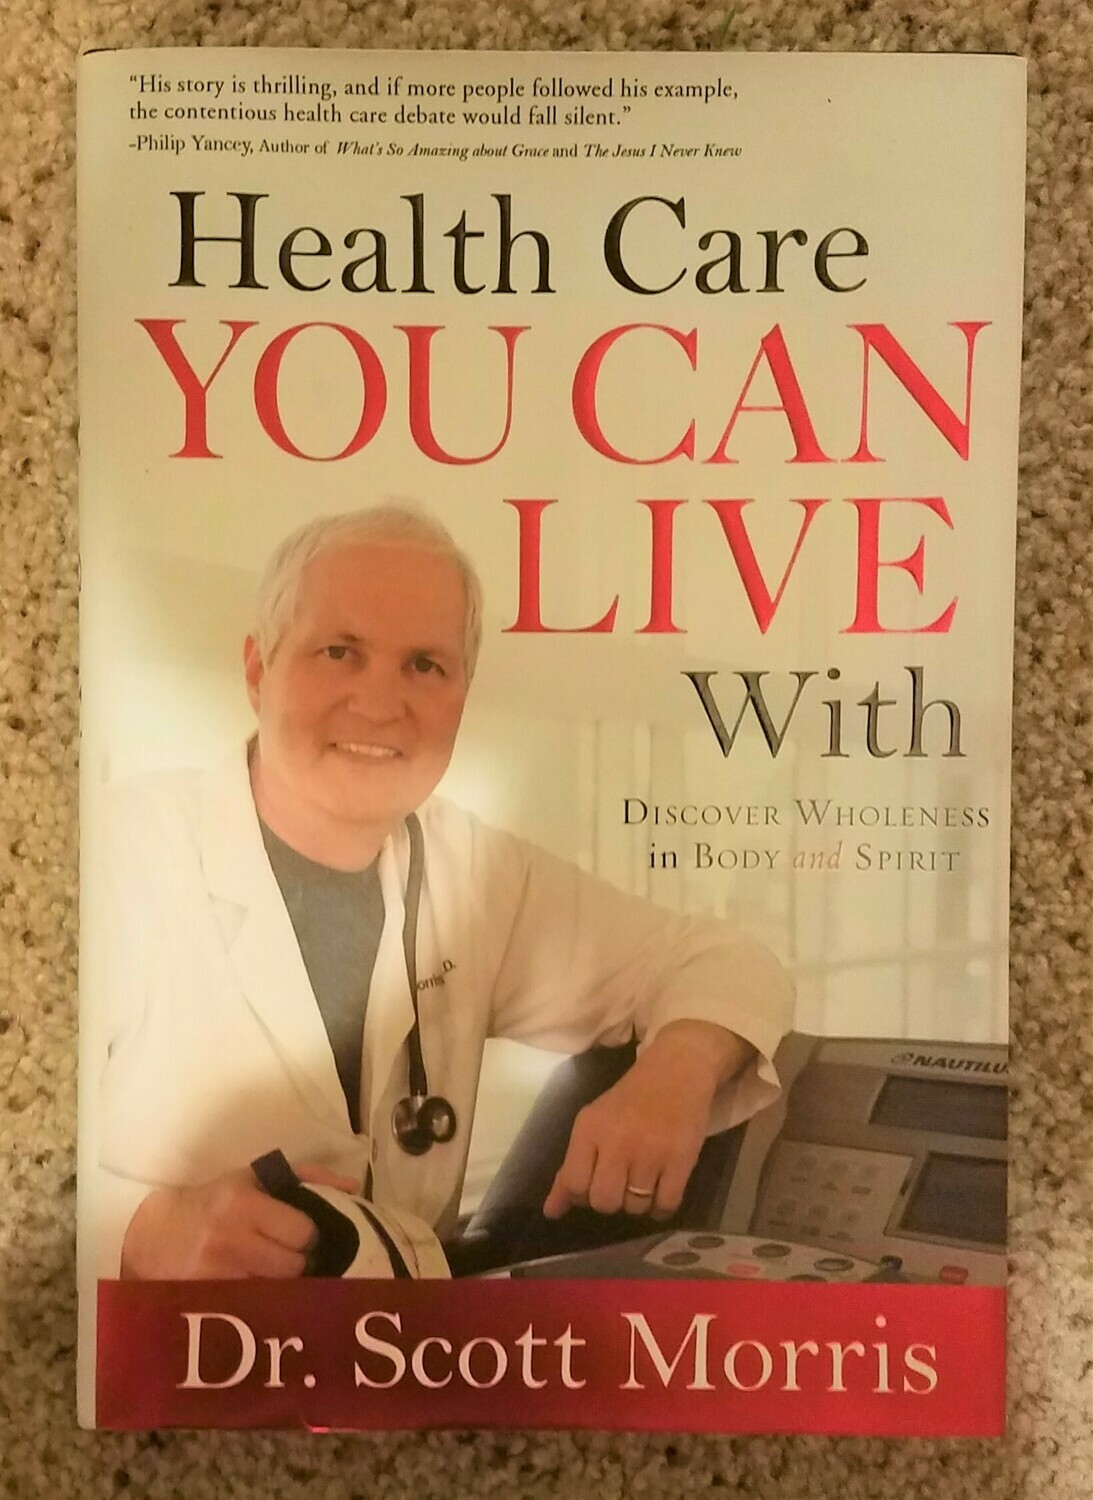 Health Care You Can Live With by Dr. Scott Morris